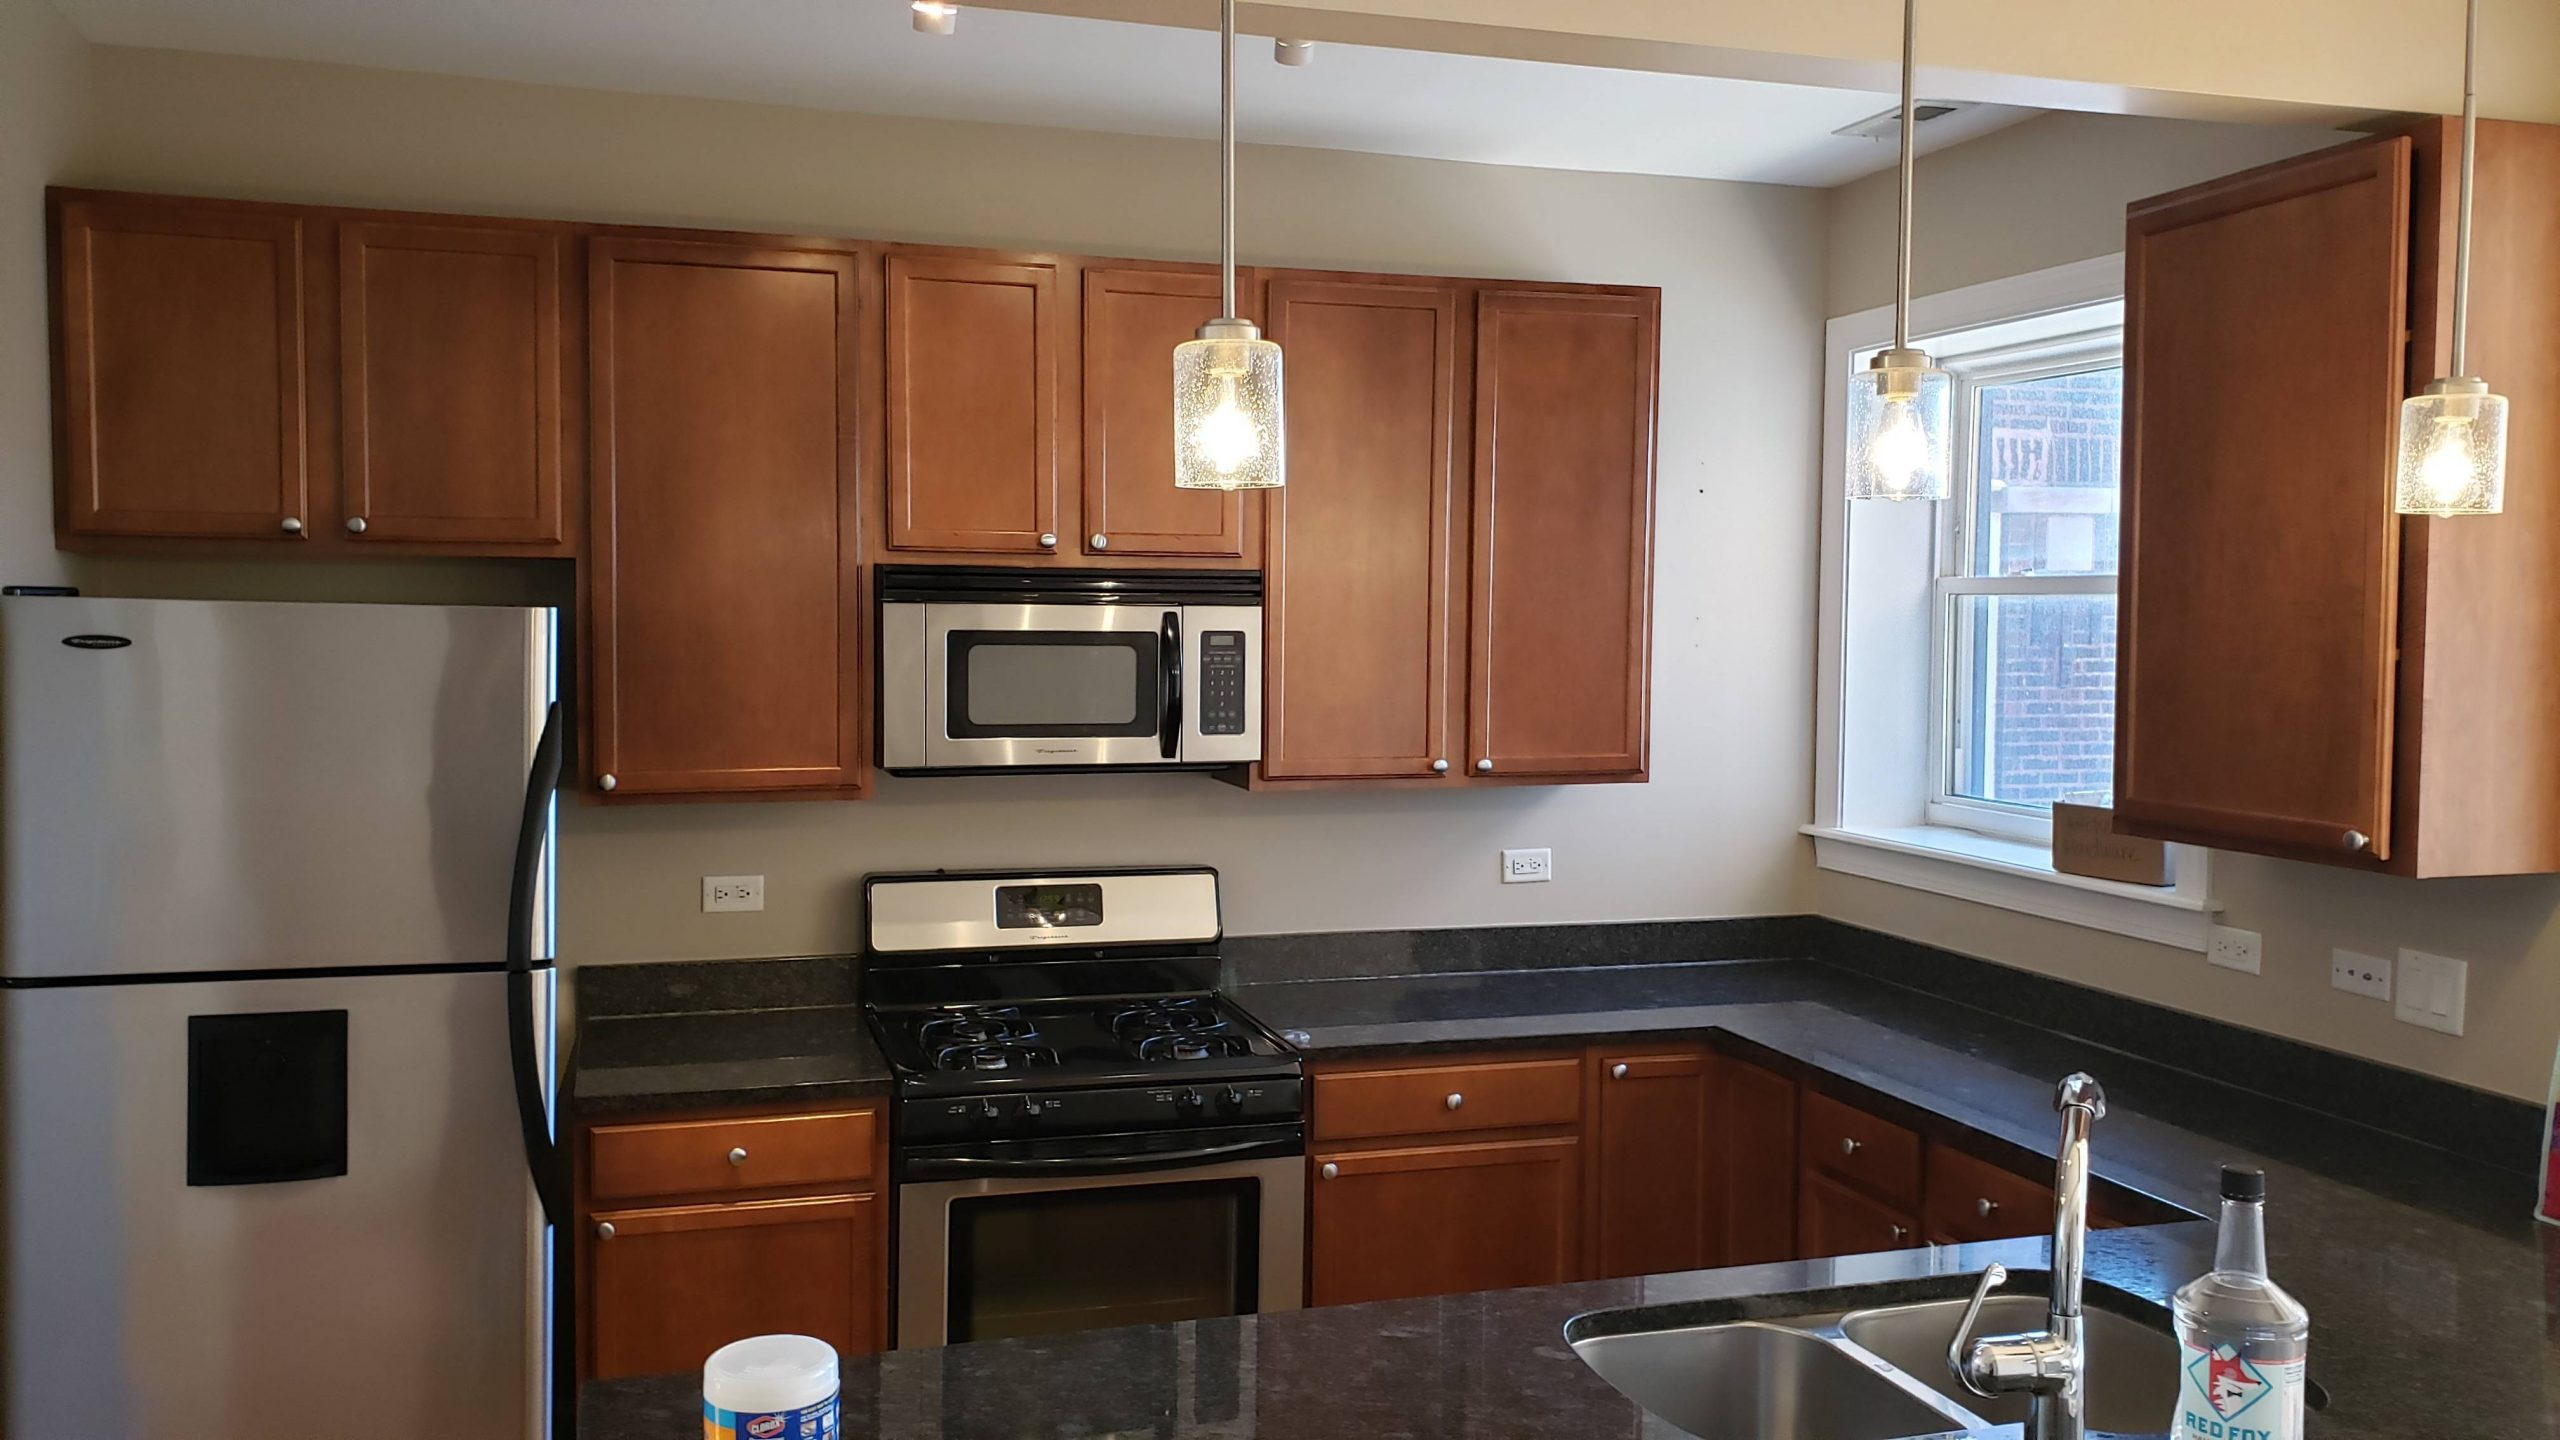 2020.04.22_Lakeview_Kitchen_cabinets_painting - Chicago-painter.-Kitchen-cabinets-painting.-Lakeview-1.jpg